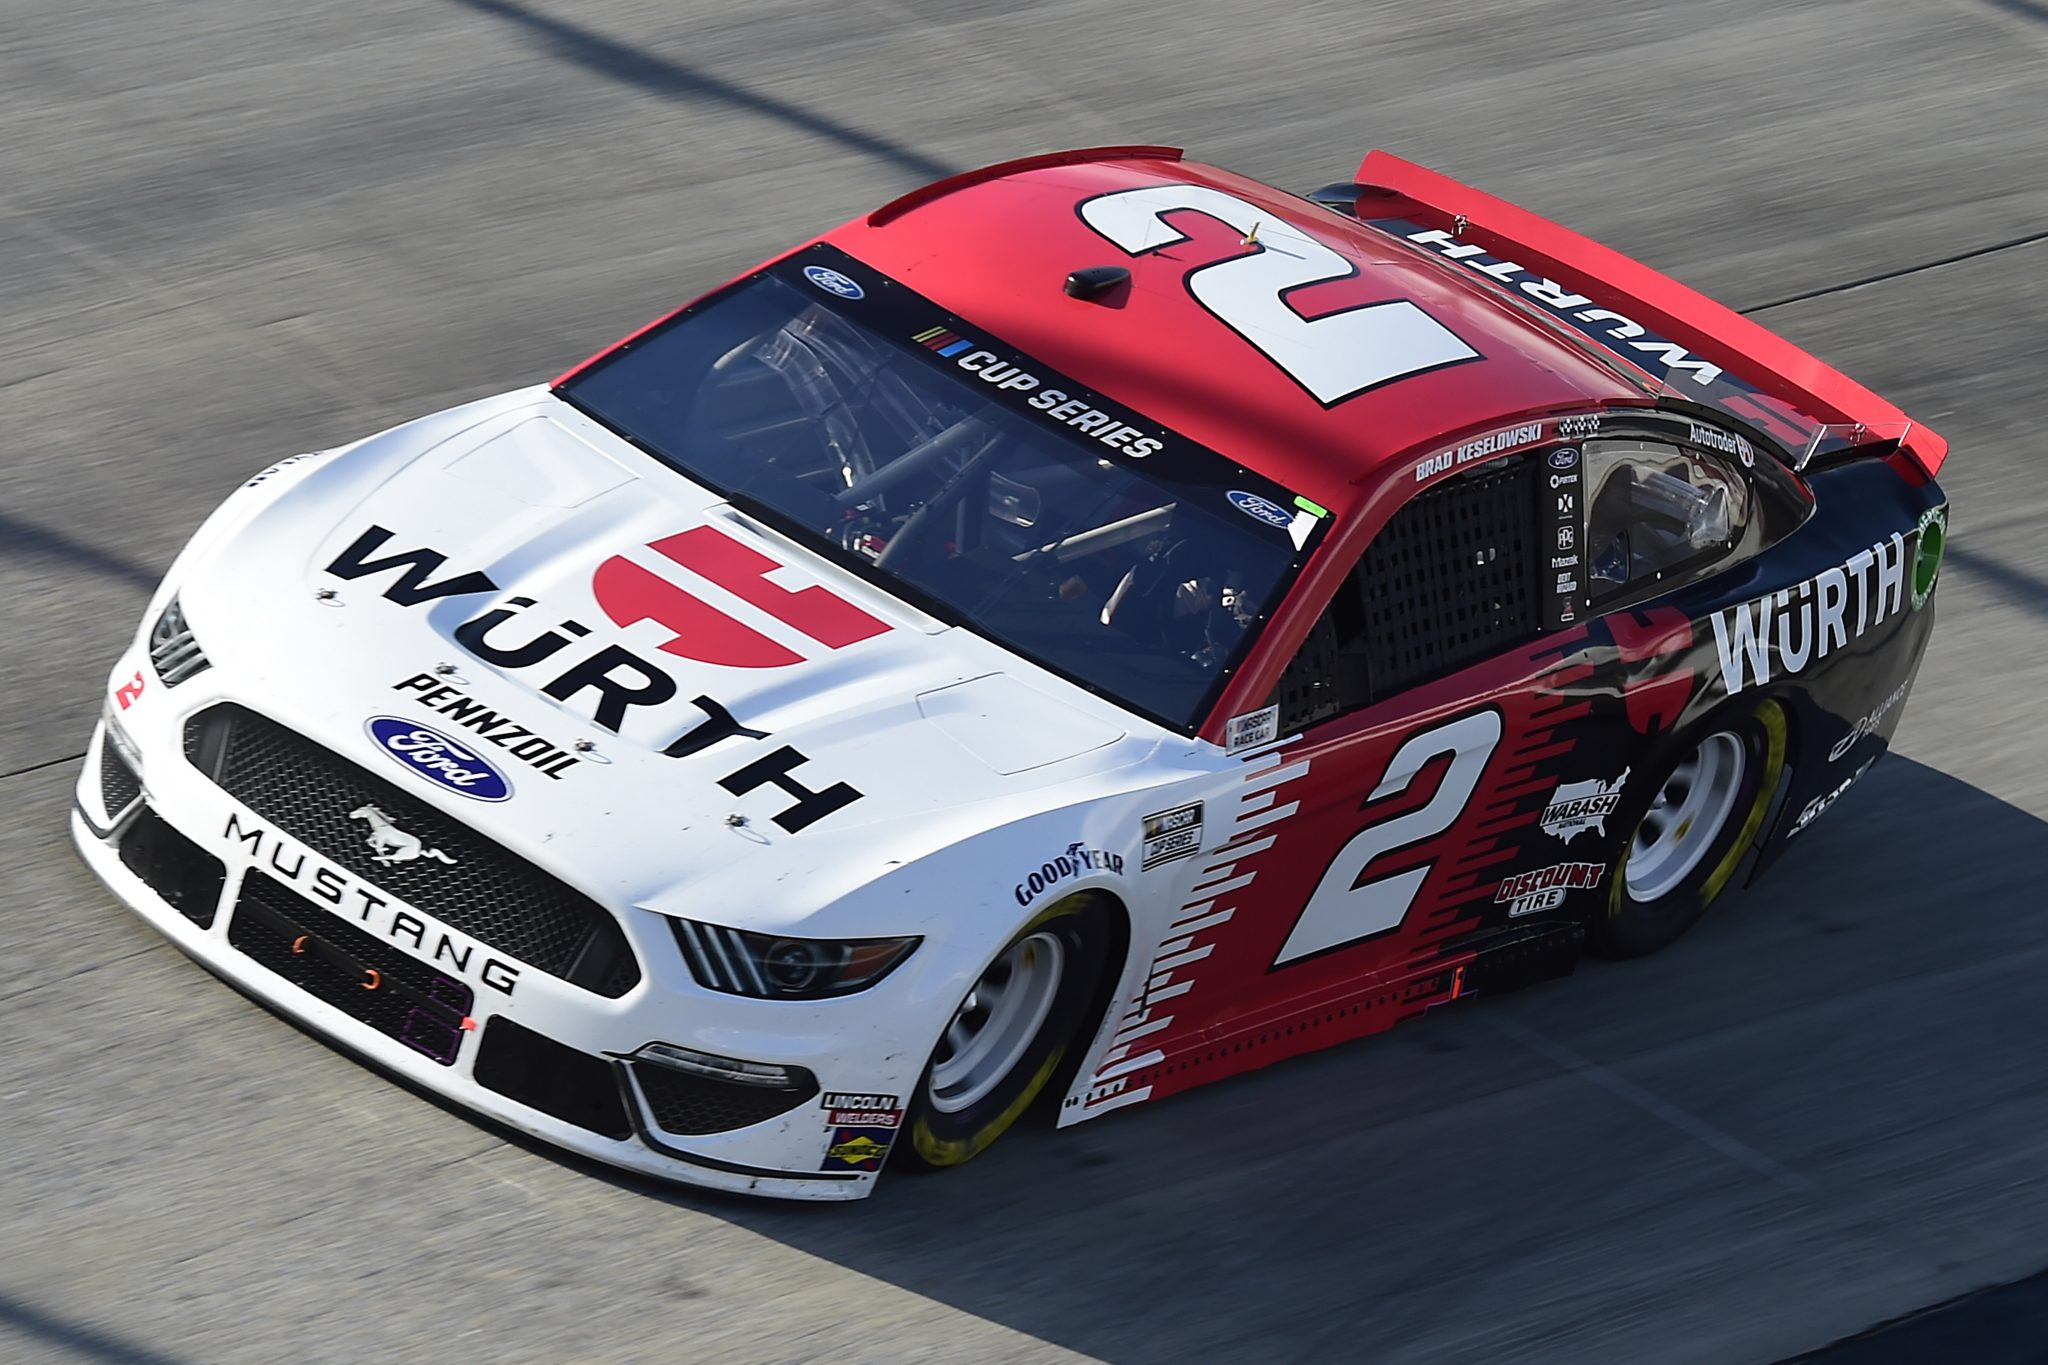 DOVER, DELAWARE - AUGUST 23: Brad Keselowski, driver of the #2 Wurth Ford, drives during the NASCAR Cup Series Drydene 311 at Dover International Speedway on August 23, 2020 in Dover, Delaware. (Photo by Jared C. Tilton/Getty Images) | Getty Images